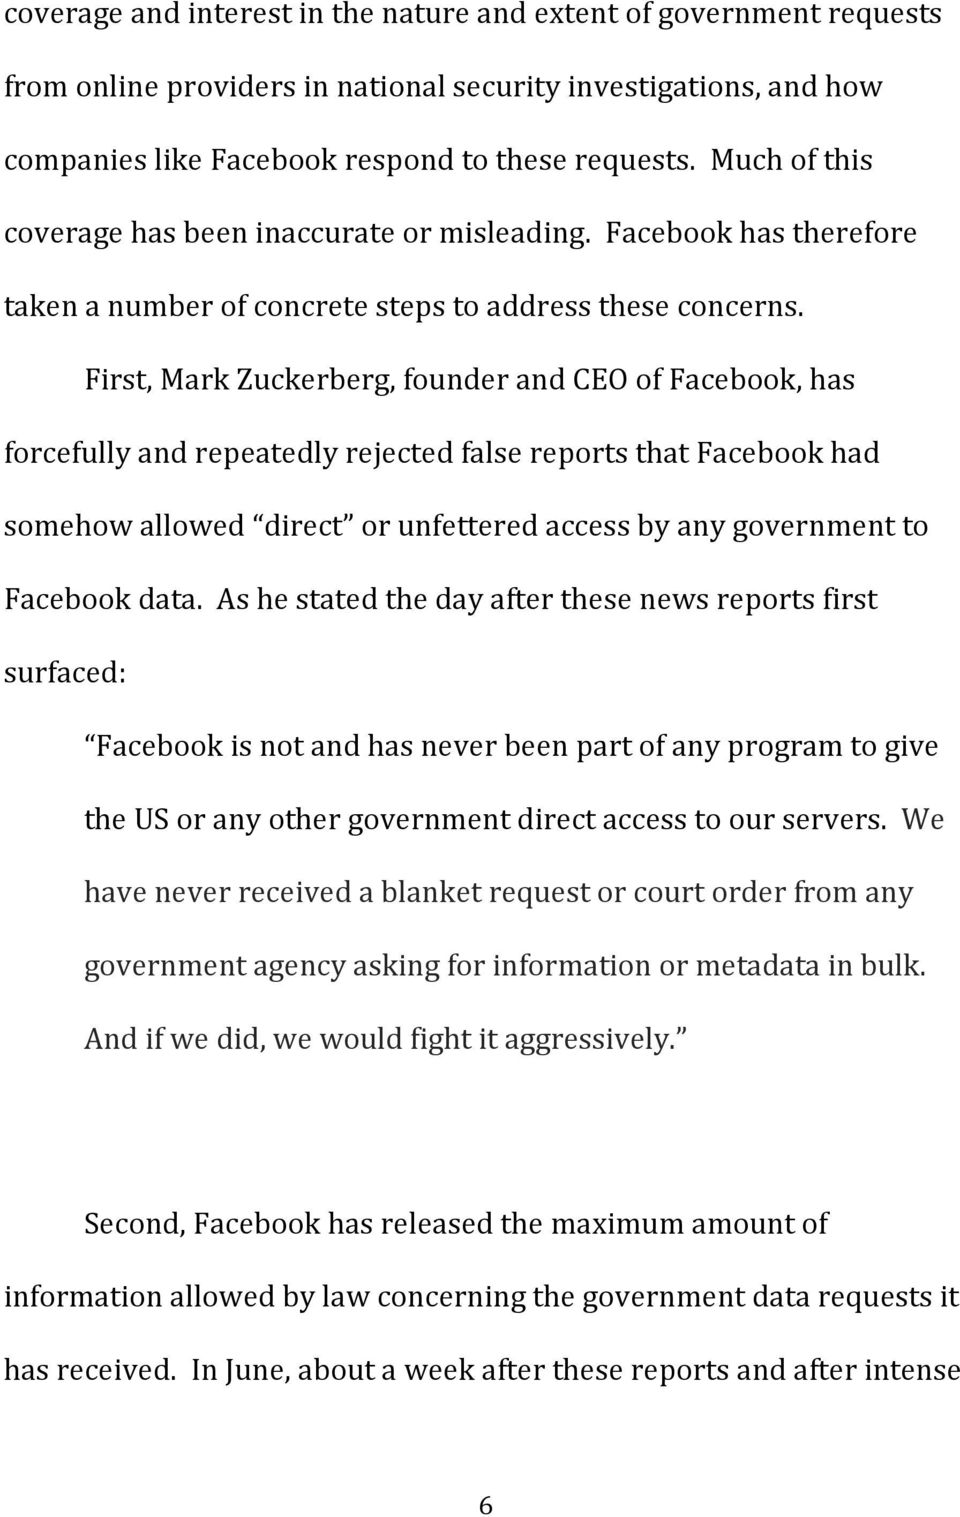 First, Mark Zuckerberg, founder and CEO of Facebook, has forcefully and repeatedly rejected false reports that Facebook had somehow allowed direct or unfettered access by any government to Facebook